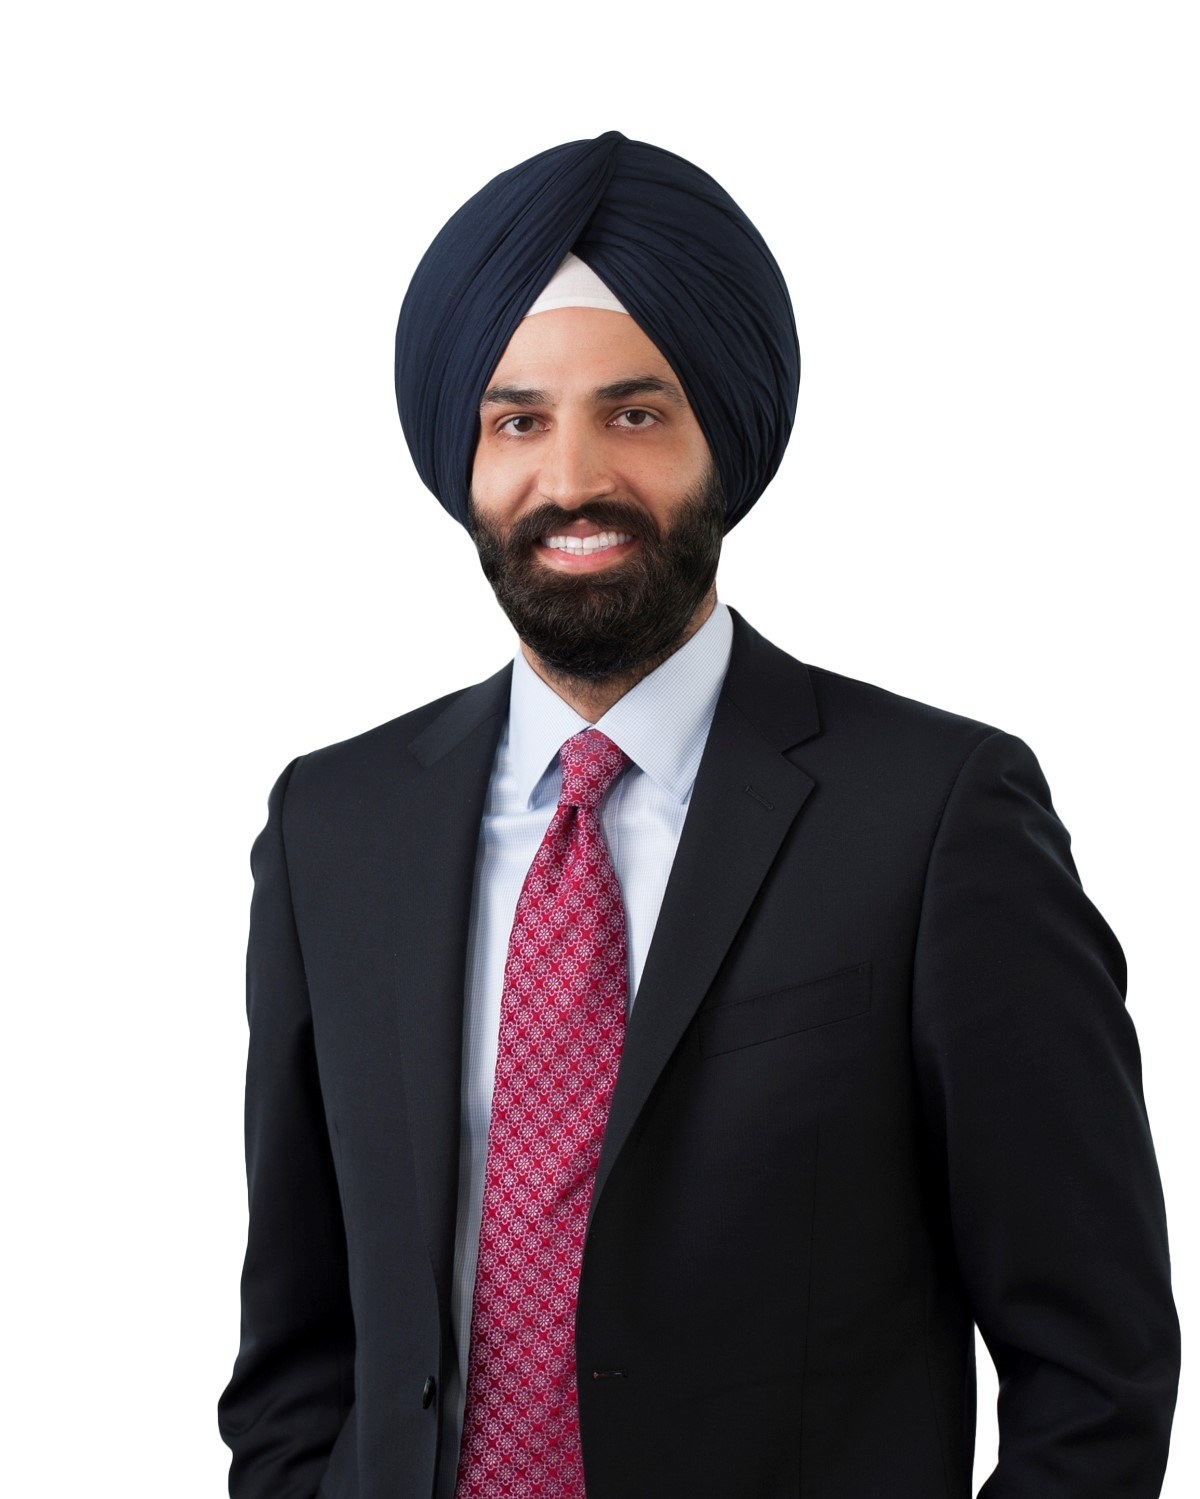 Amandeep in a work photo for his law firm